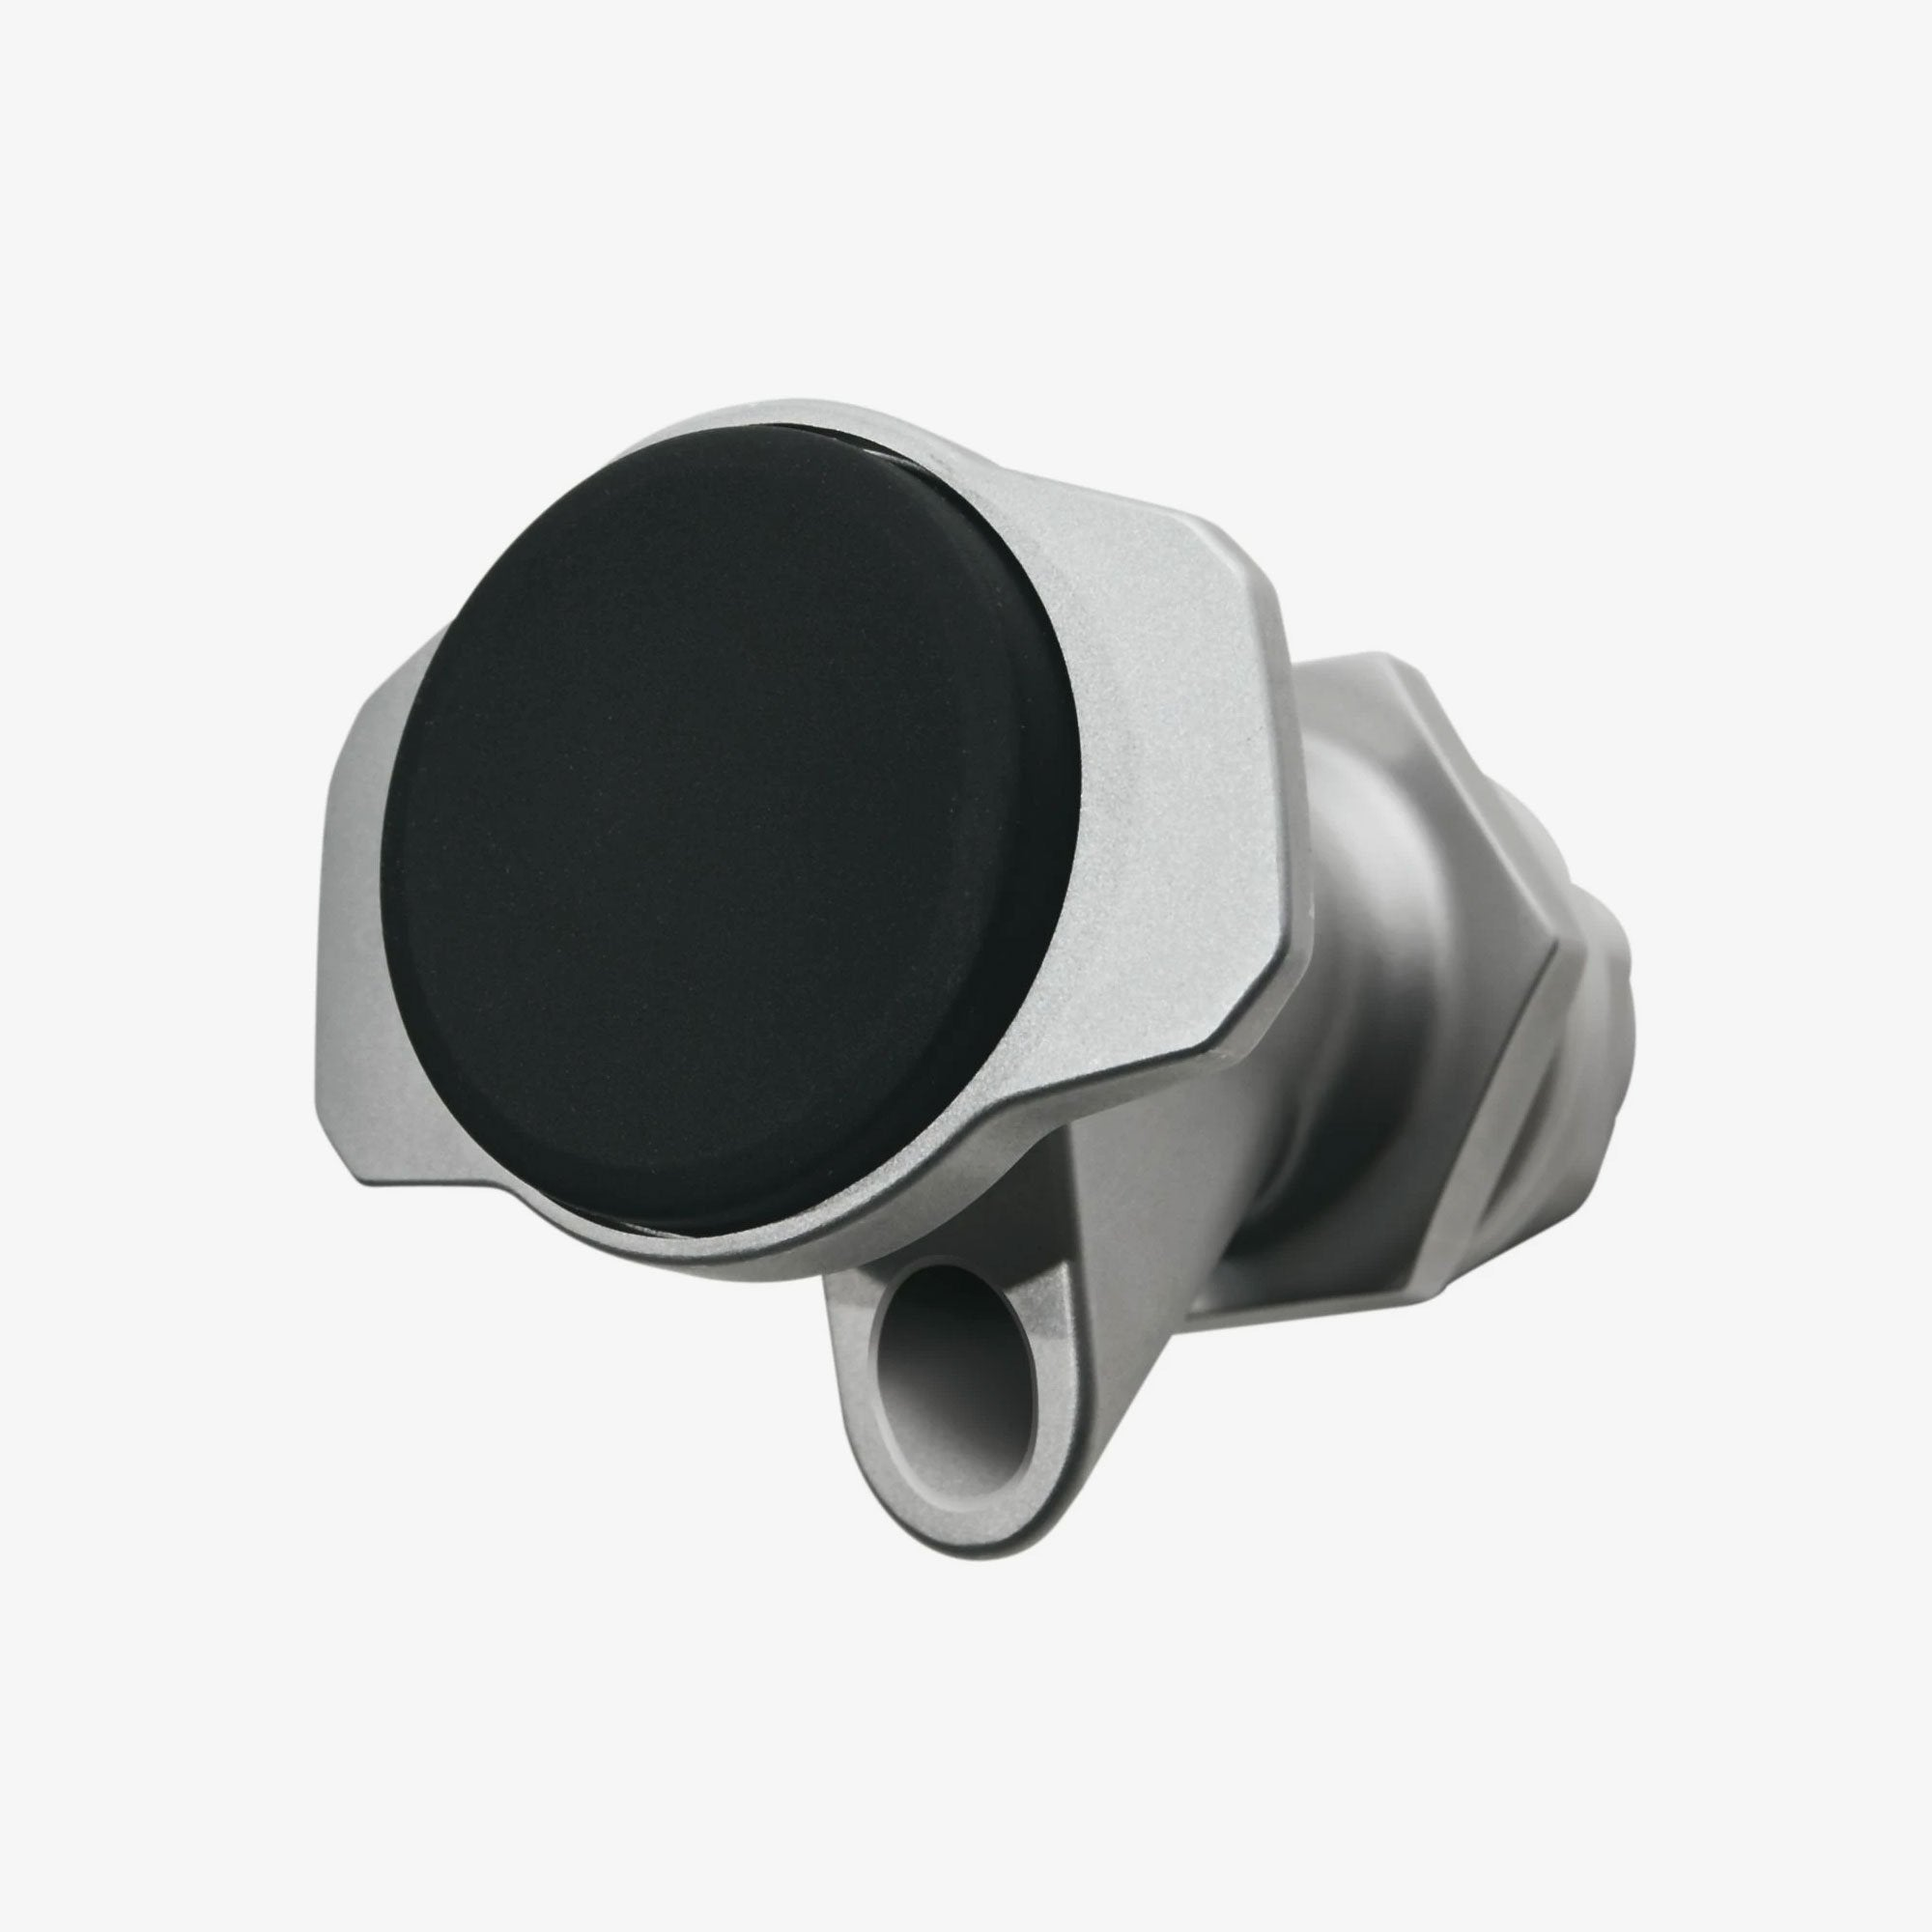 Large View | X-Large Push Button Spigot For 2-10 Gallon Water Jugs in Silver, Black at Igloo Accessories